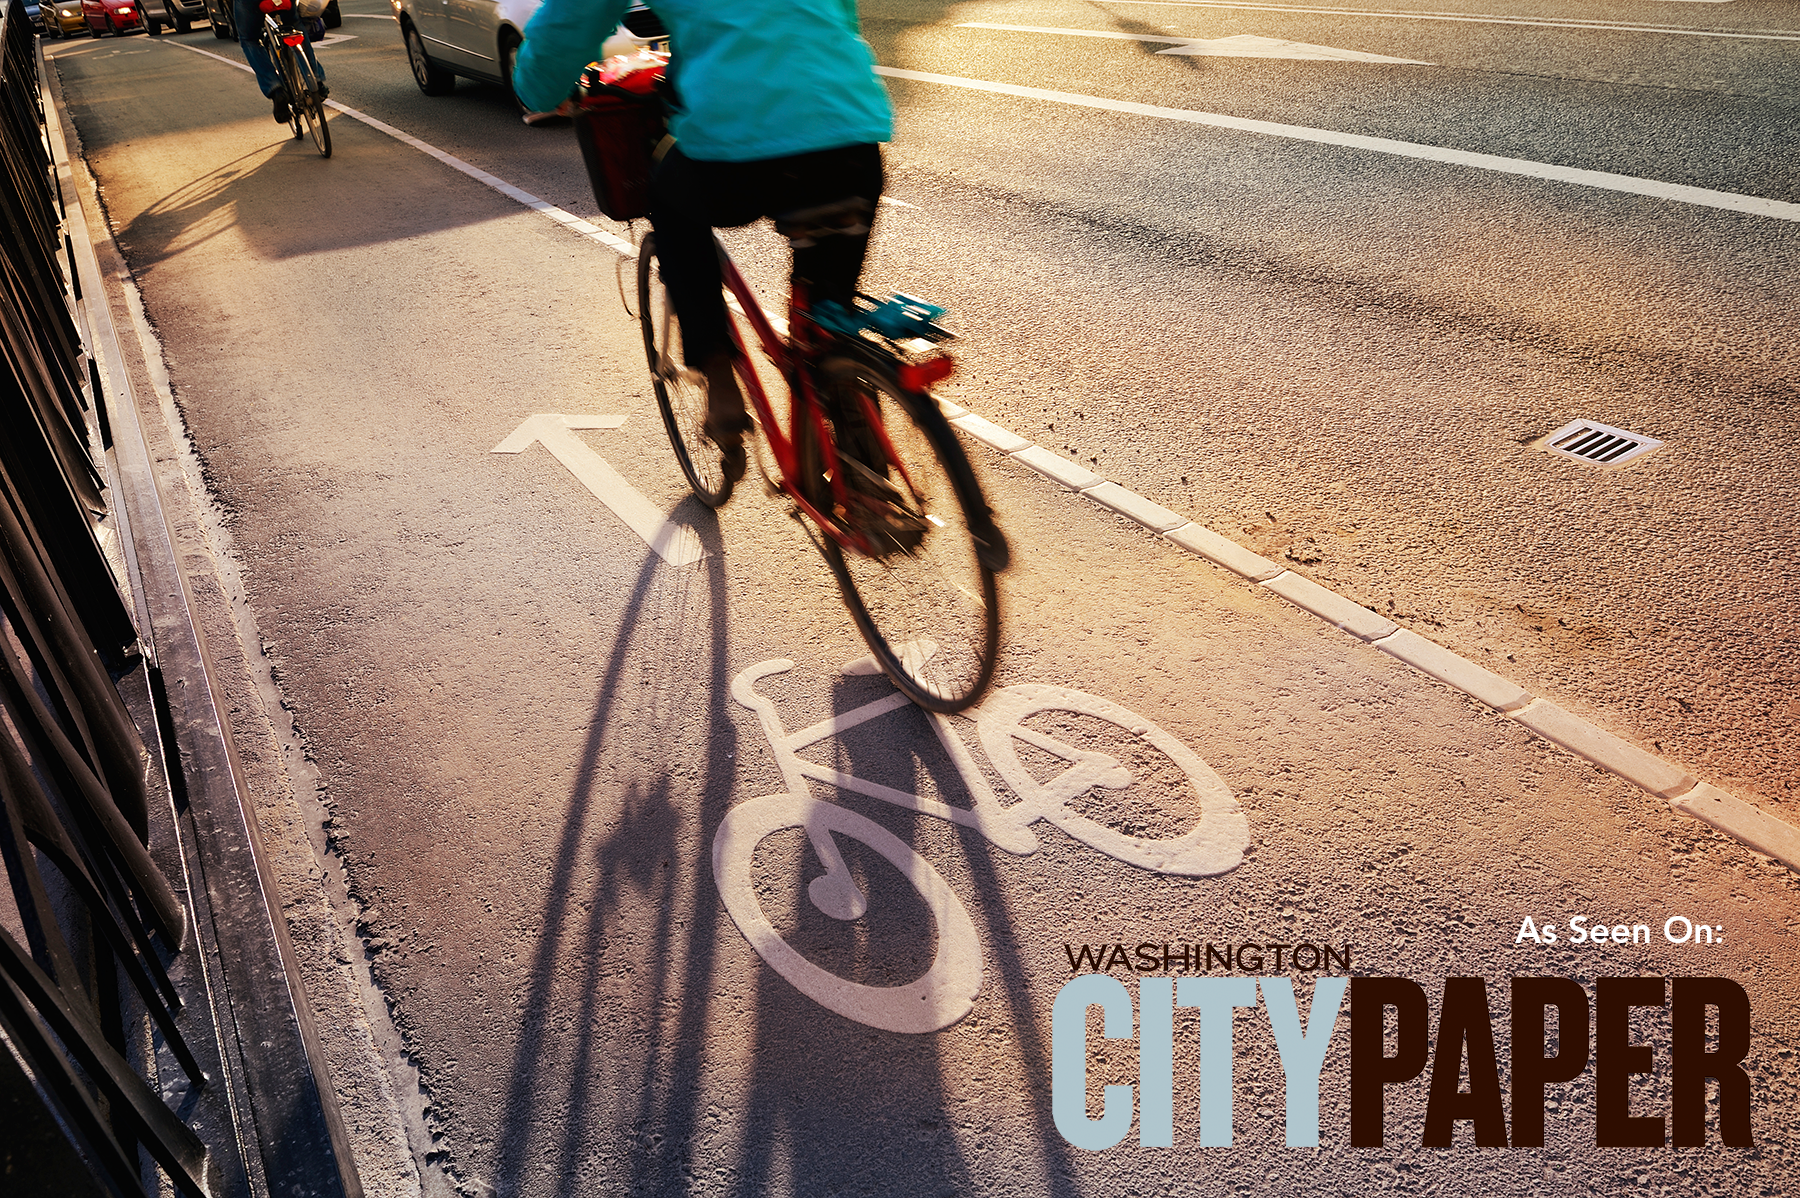 Ward 8 Gets Its First Bike Lanes...click here for full article